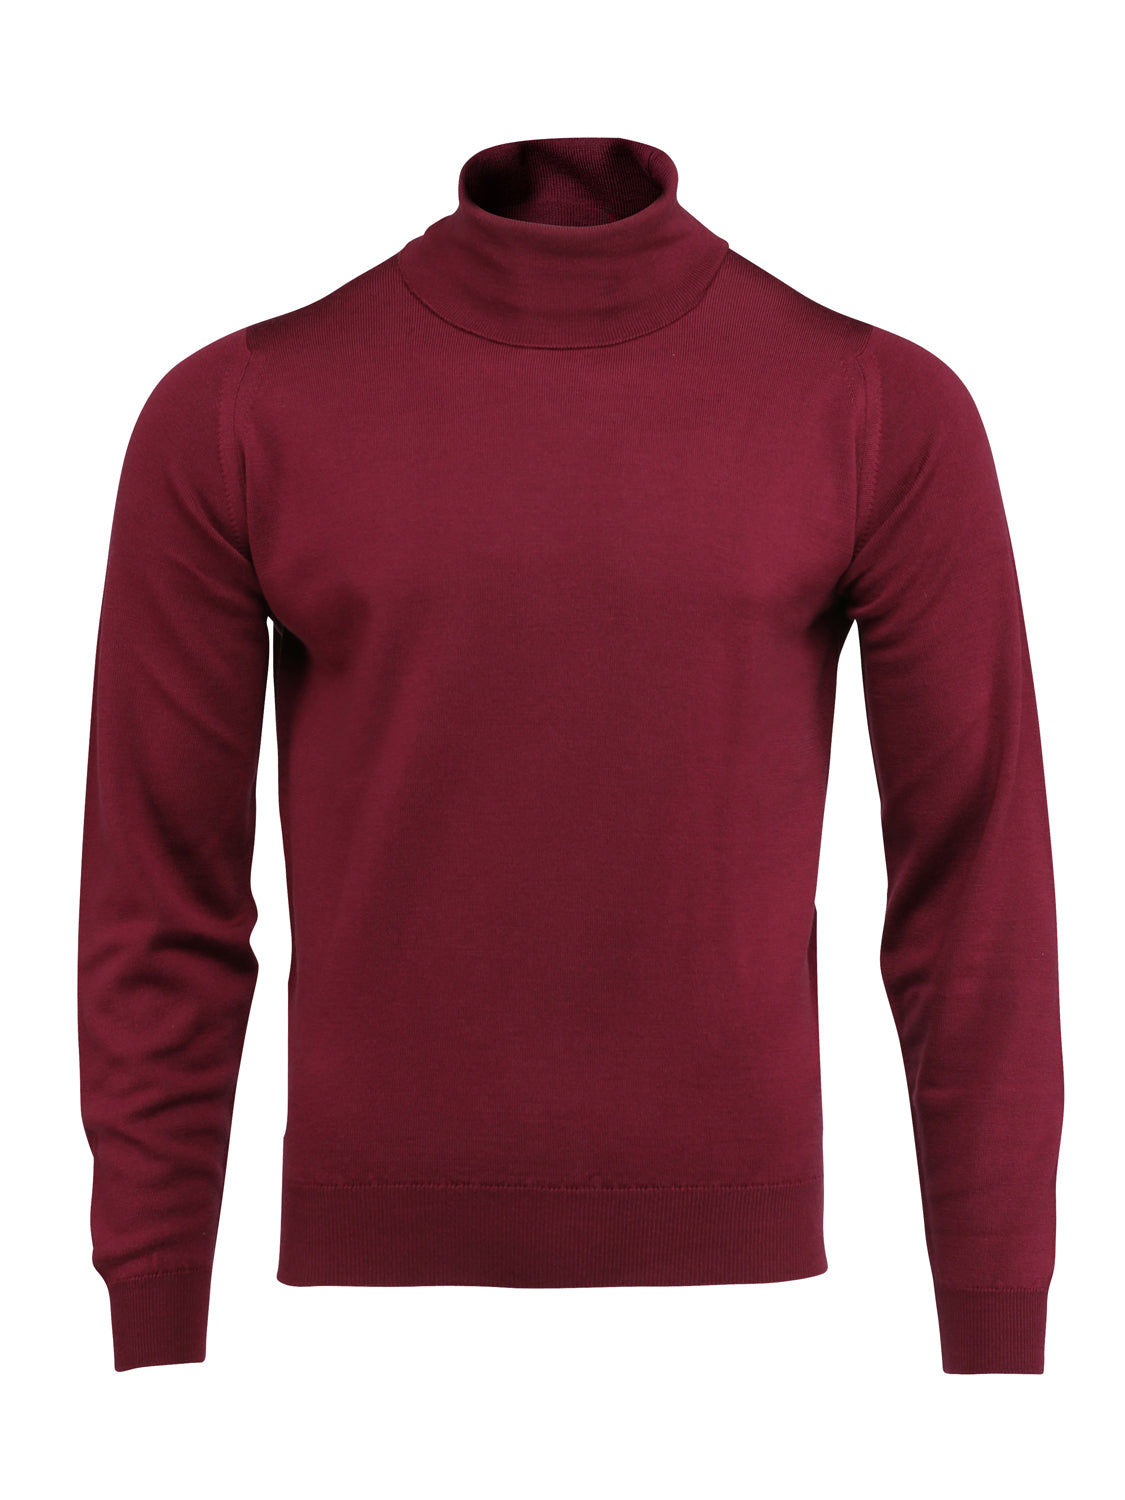 John Smedley Connell Pullover (Bordeaux)